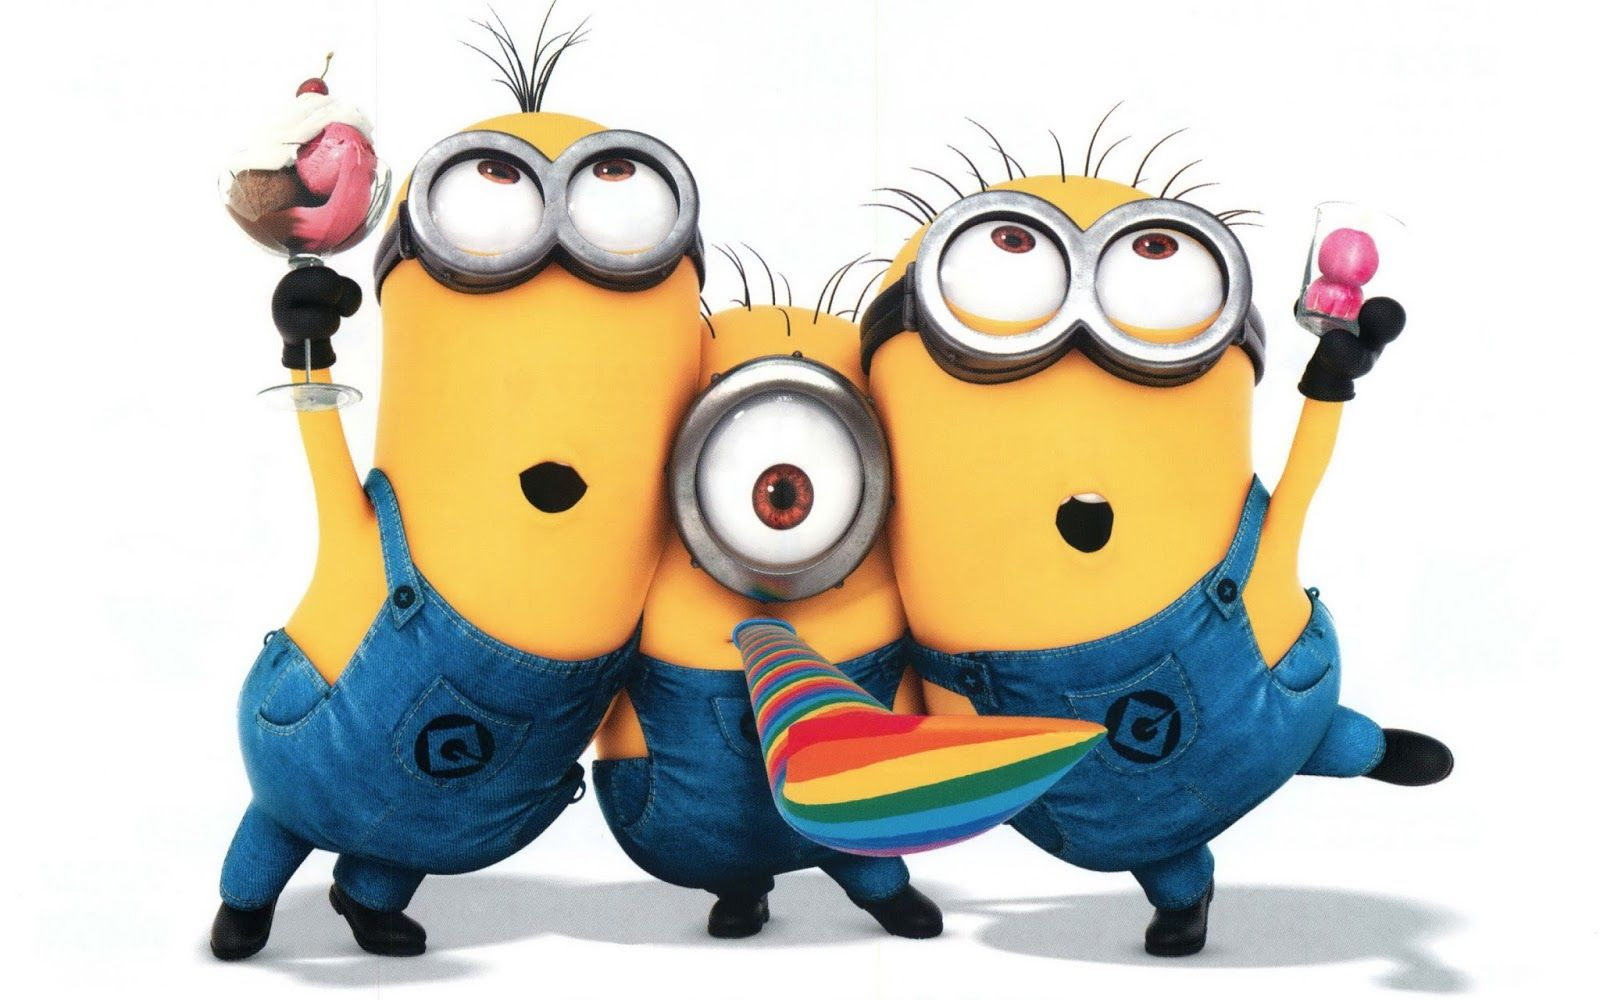 Minion clipart larry. Ideas para fiesta infantil